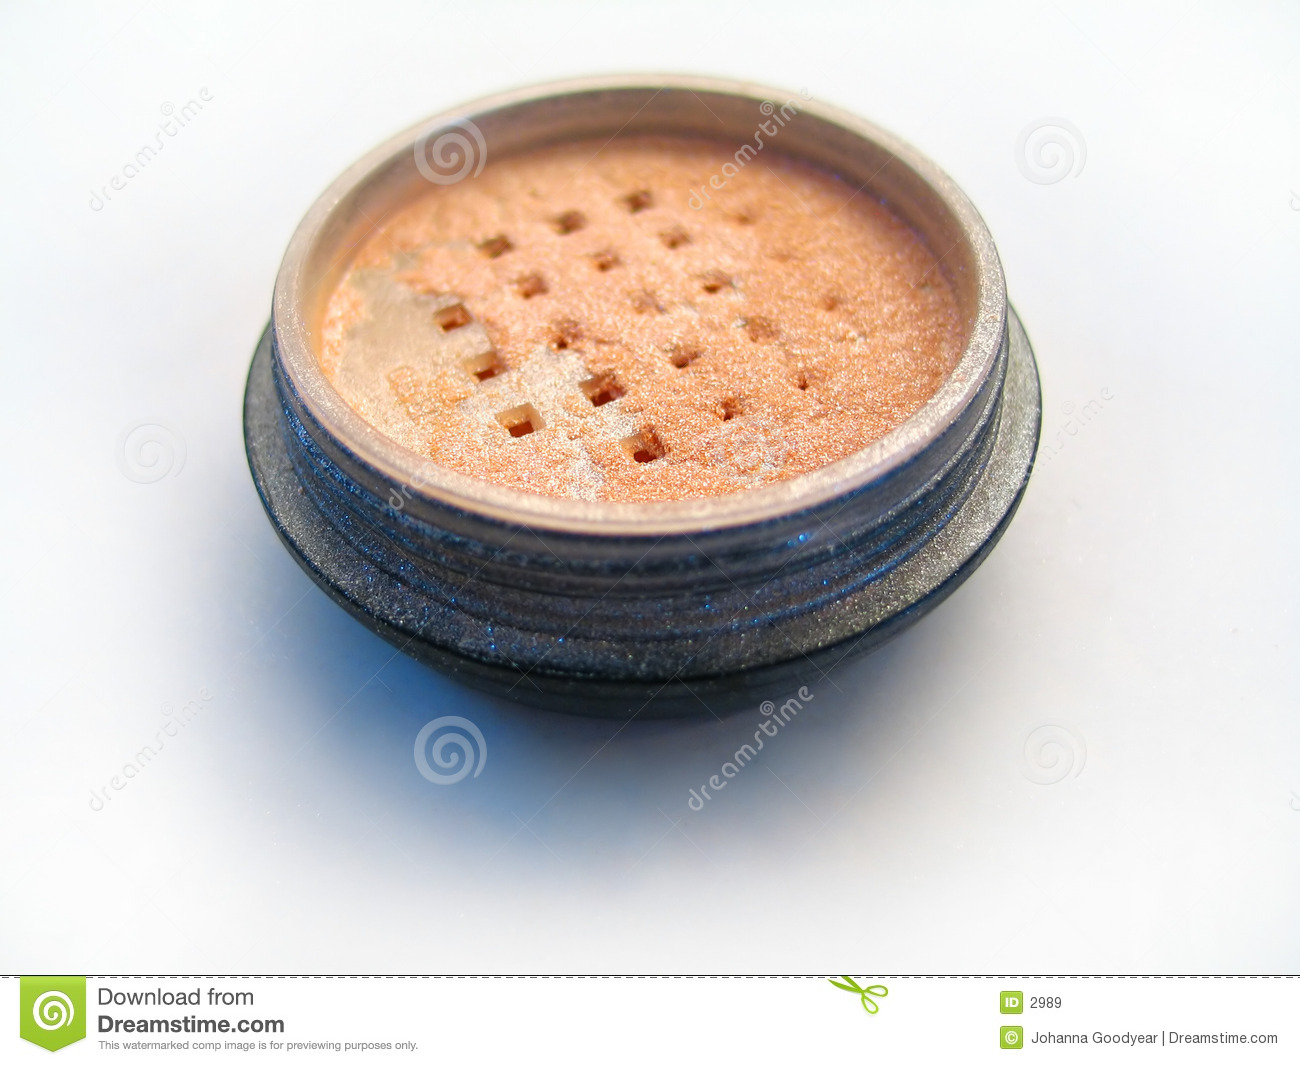 Shiny Makeup Powder